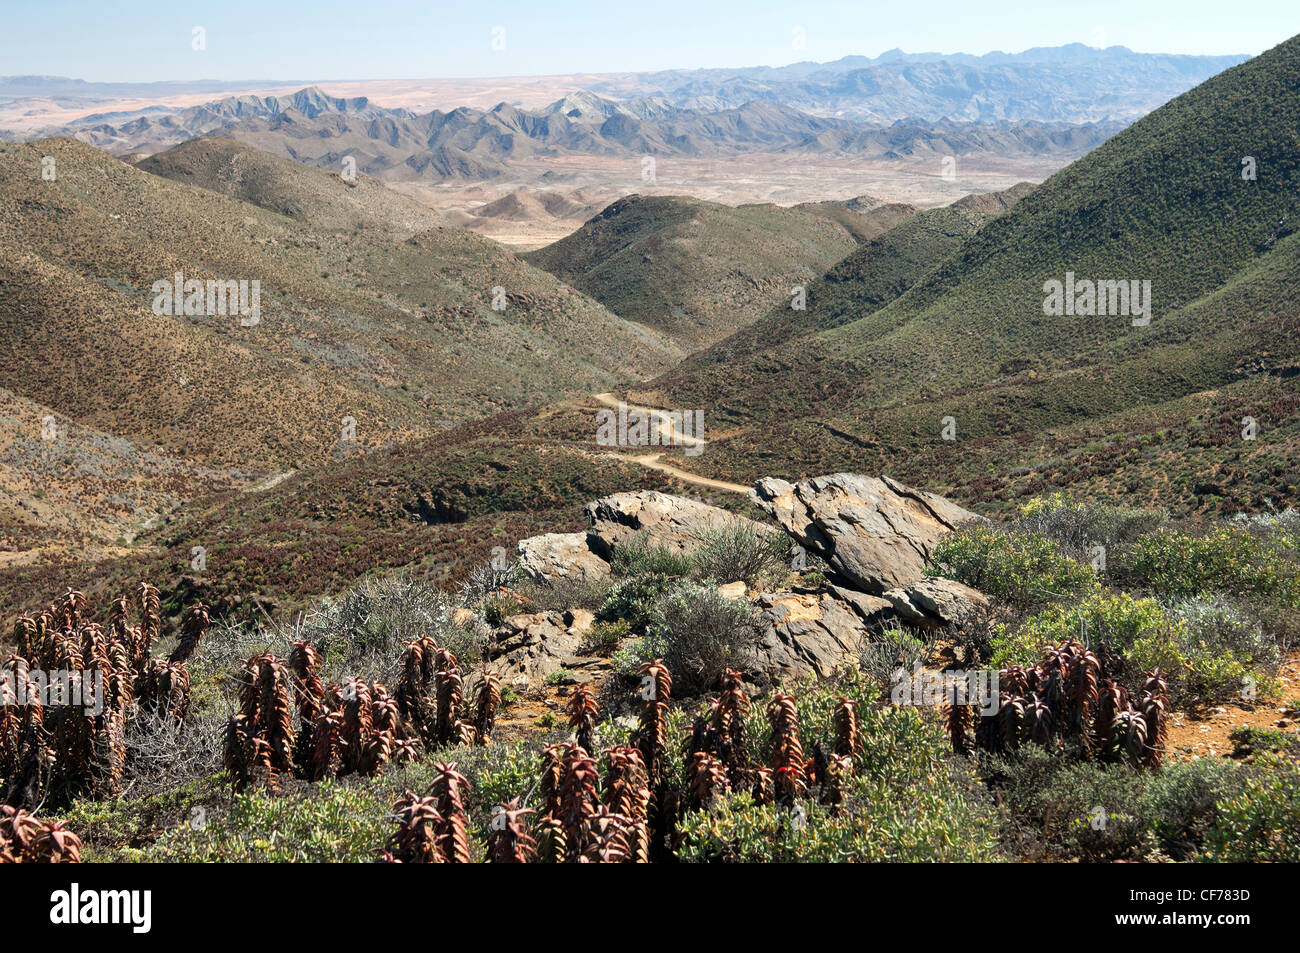 Arid valley at the Helskloof Pass, Richtersveld National Park, Namaqualand, South Africa - Stock Image